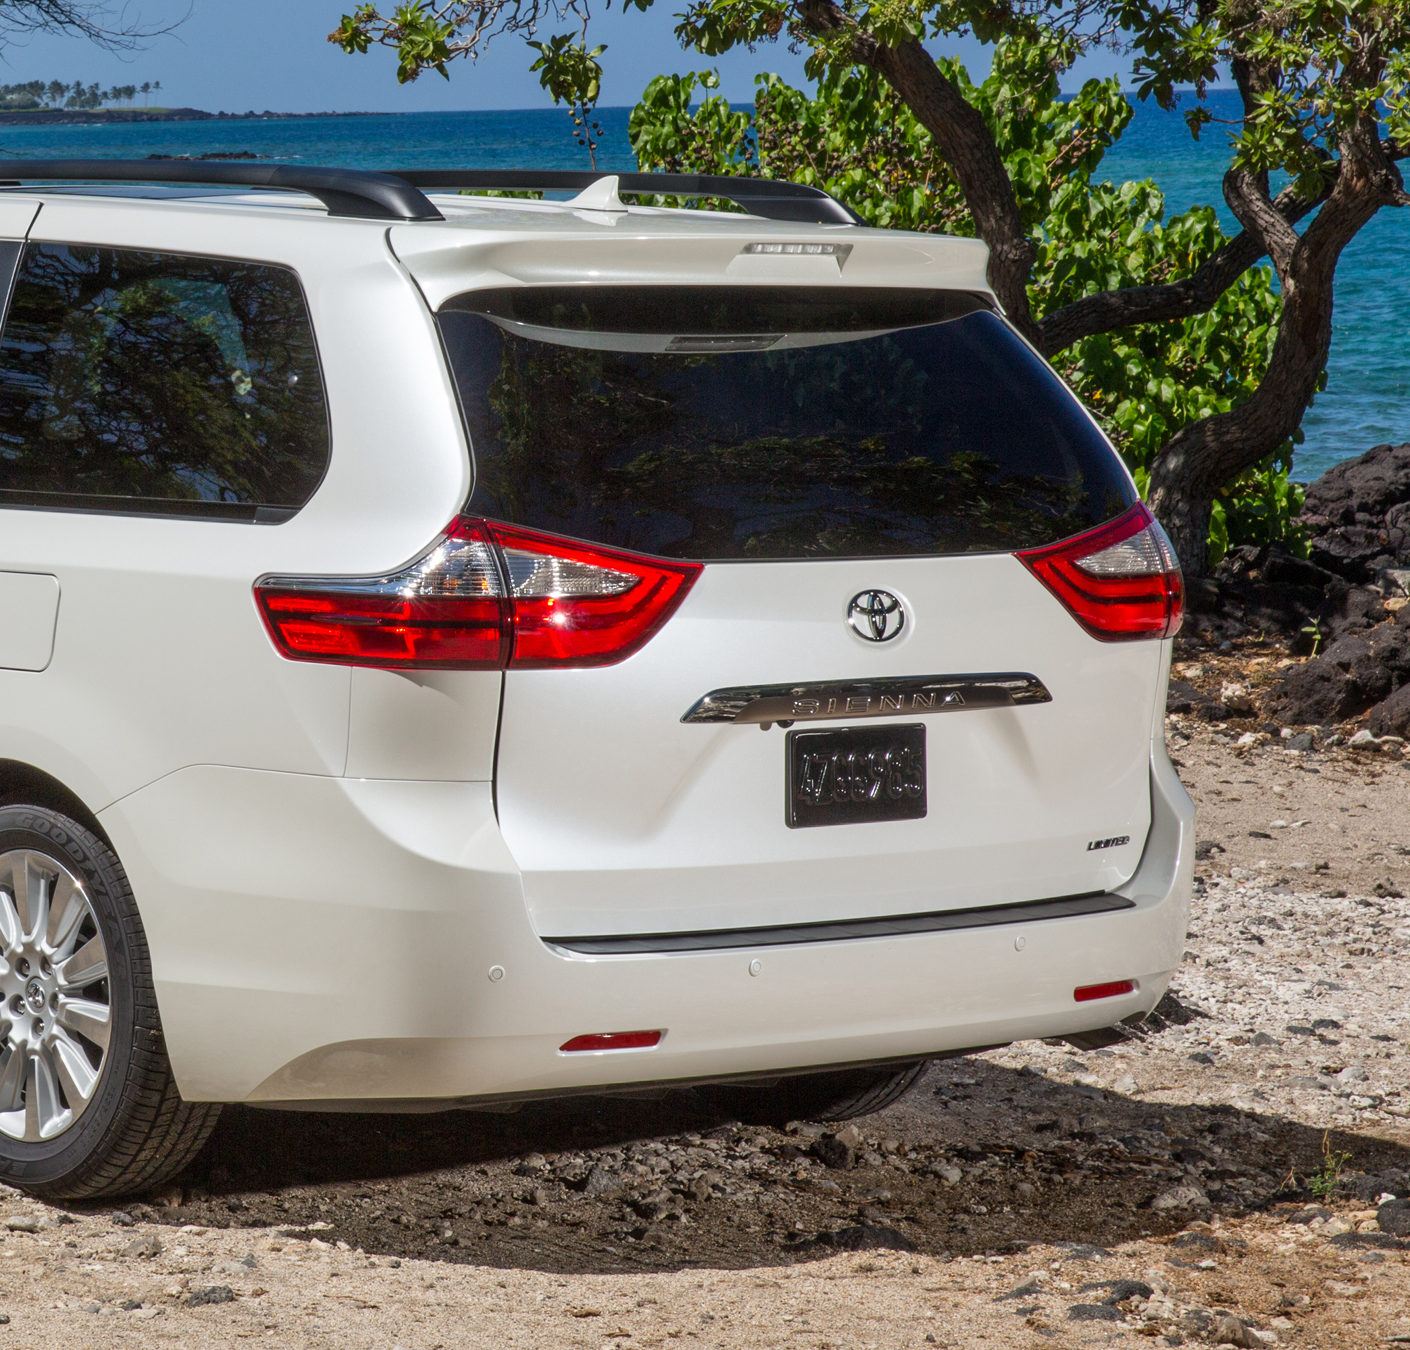 Toyota: Don't repair, blend over radar field of view on rear